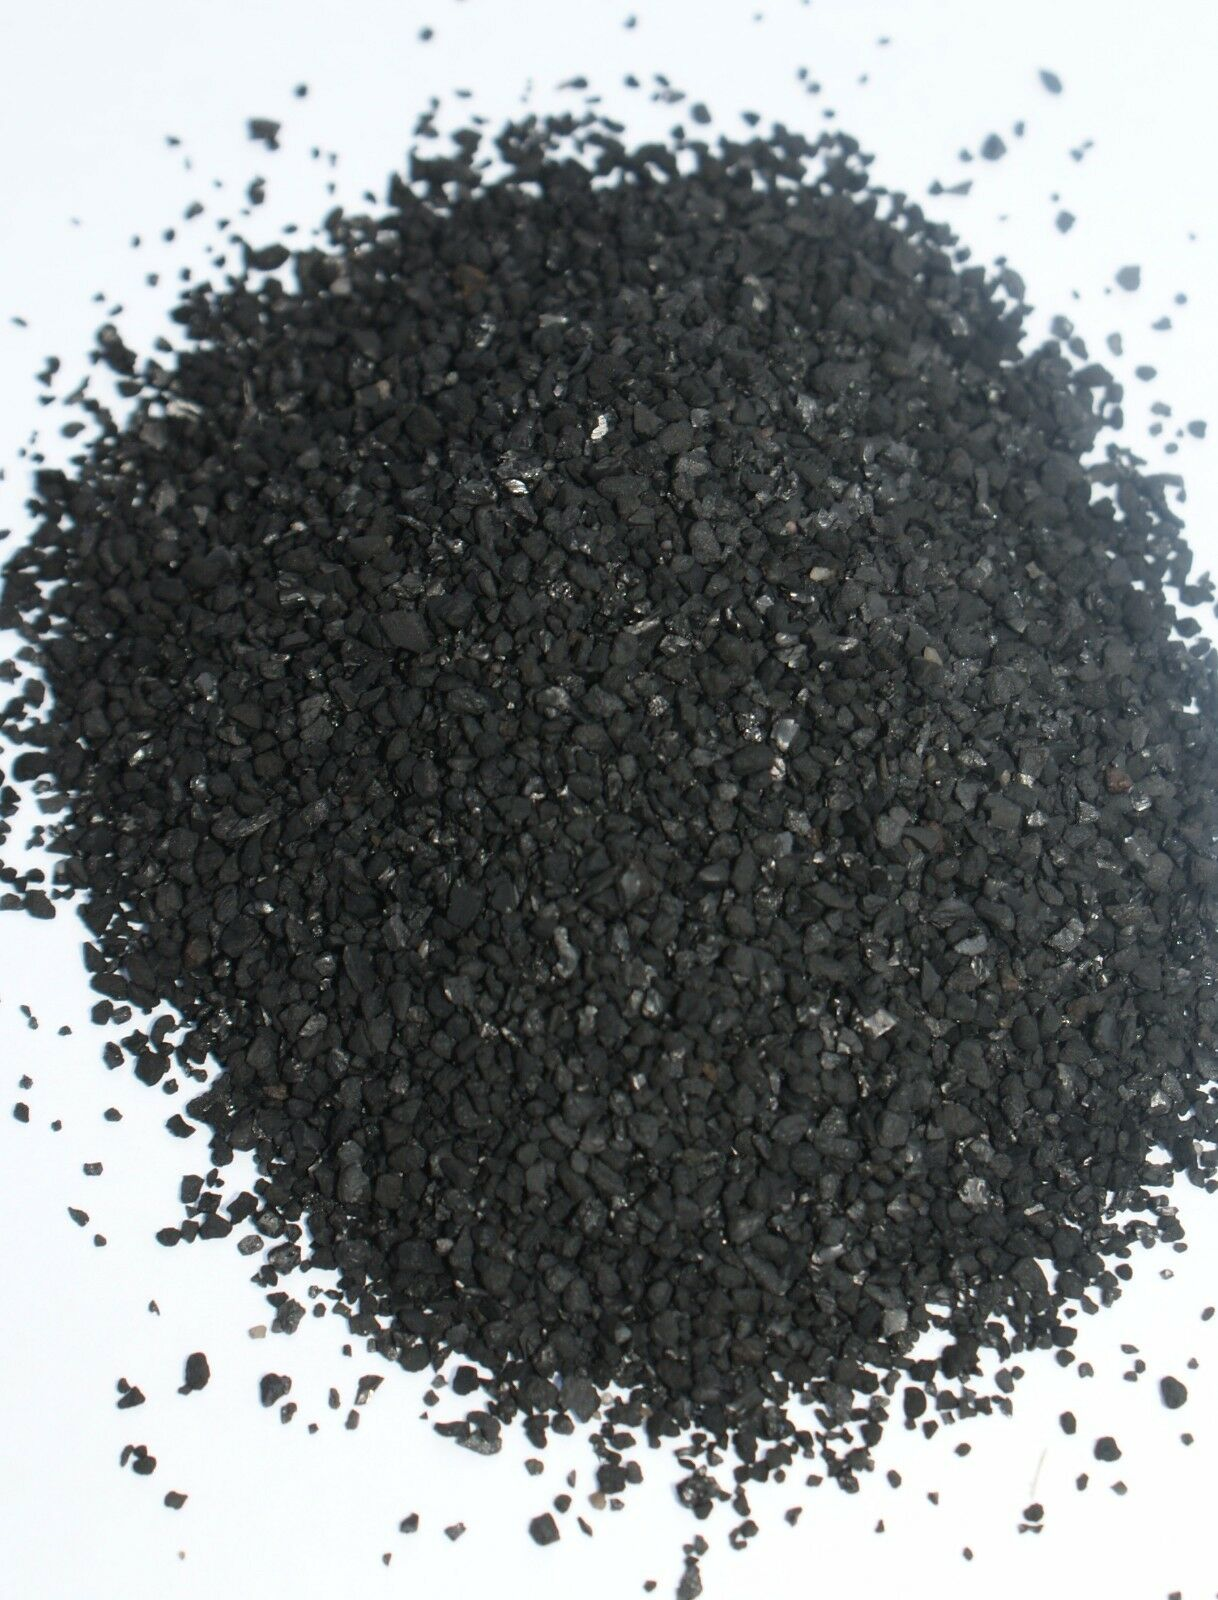 50 LBS. VIRGIN GRANULAR ACTIVATED CARBON 8 X 30 MESH COCONUT SHELL (1)50 LB. BAG